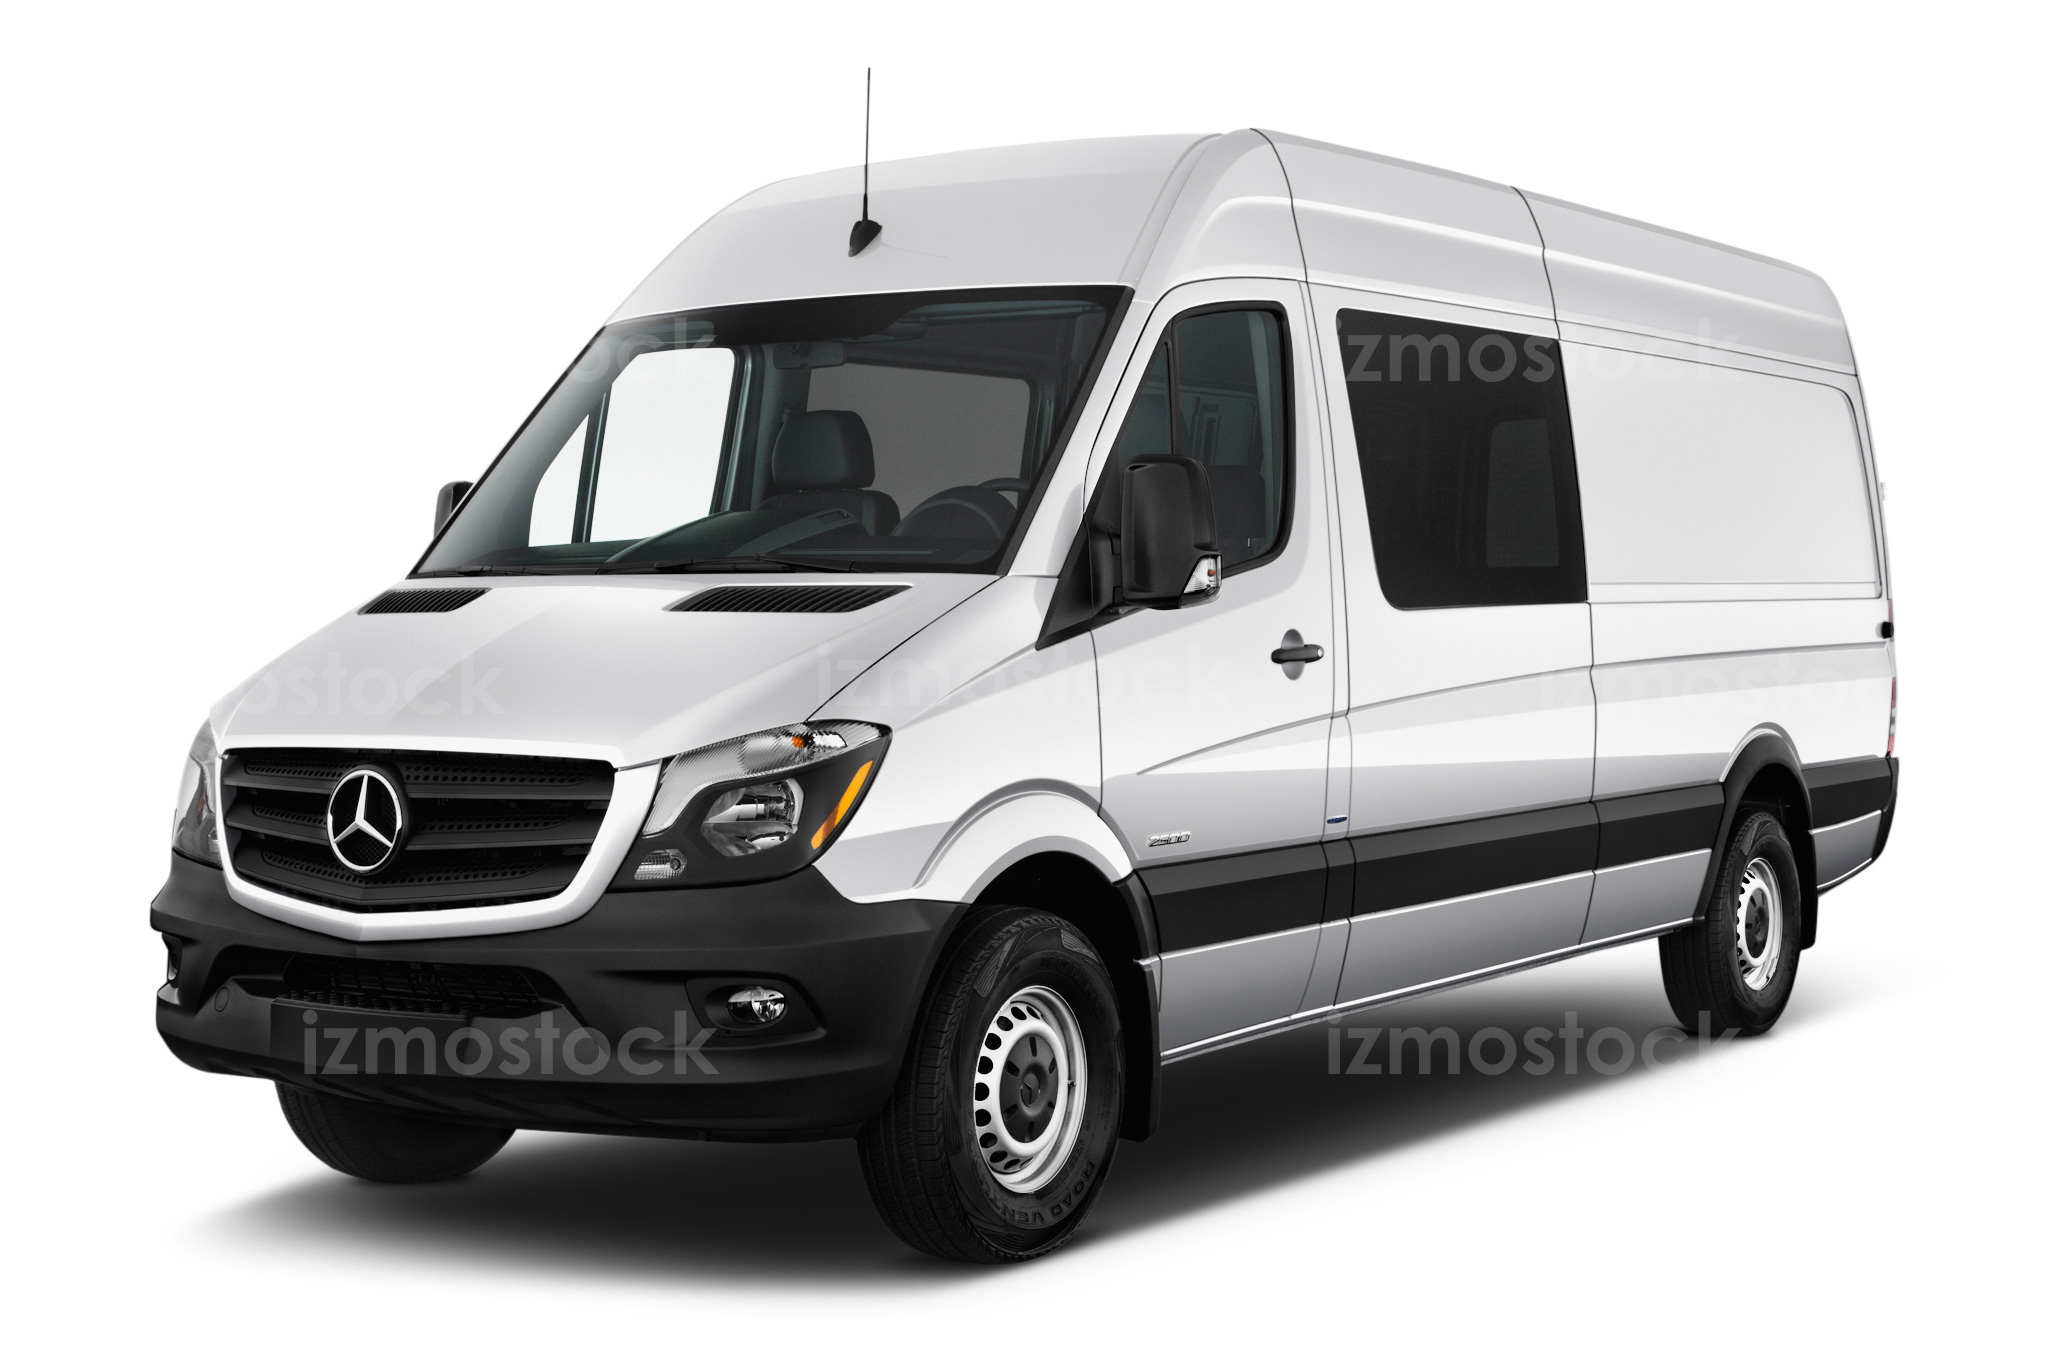 Full Size Van >> 2016 Mercedes Sprinter Spacious And Refined Full Size Van